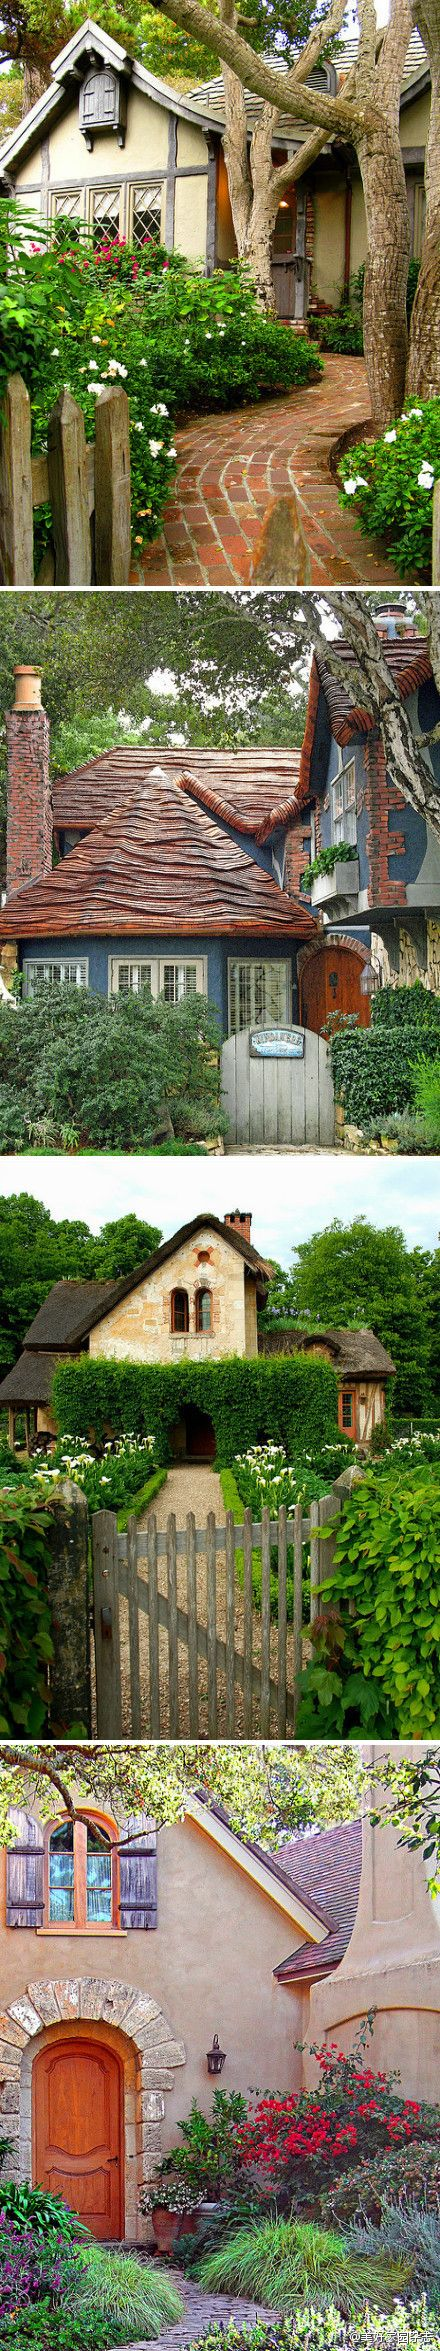 Best Storybook Homes Ideas On Pinterest Fairytale Cottage - Creative redeisgn turning stone cottage modern country home england